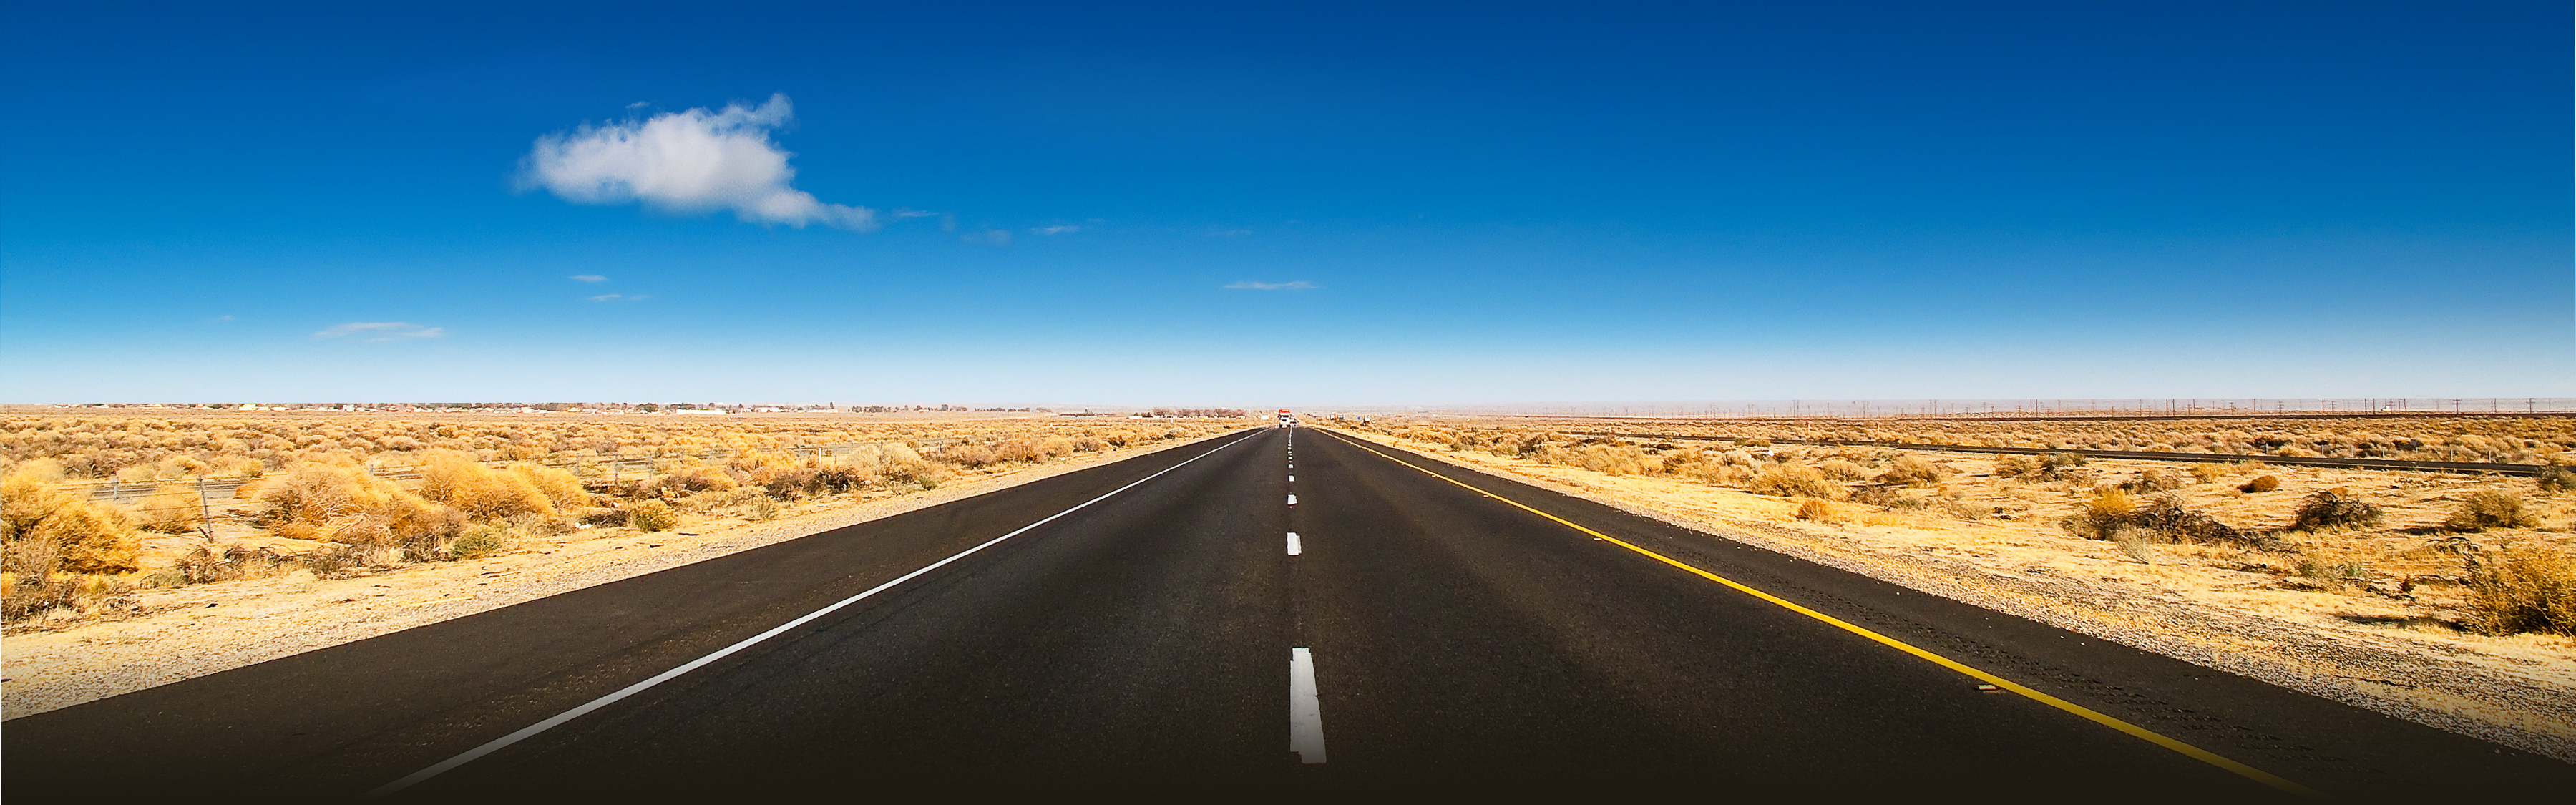 Neverending-highway-blog-header3